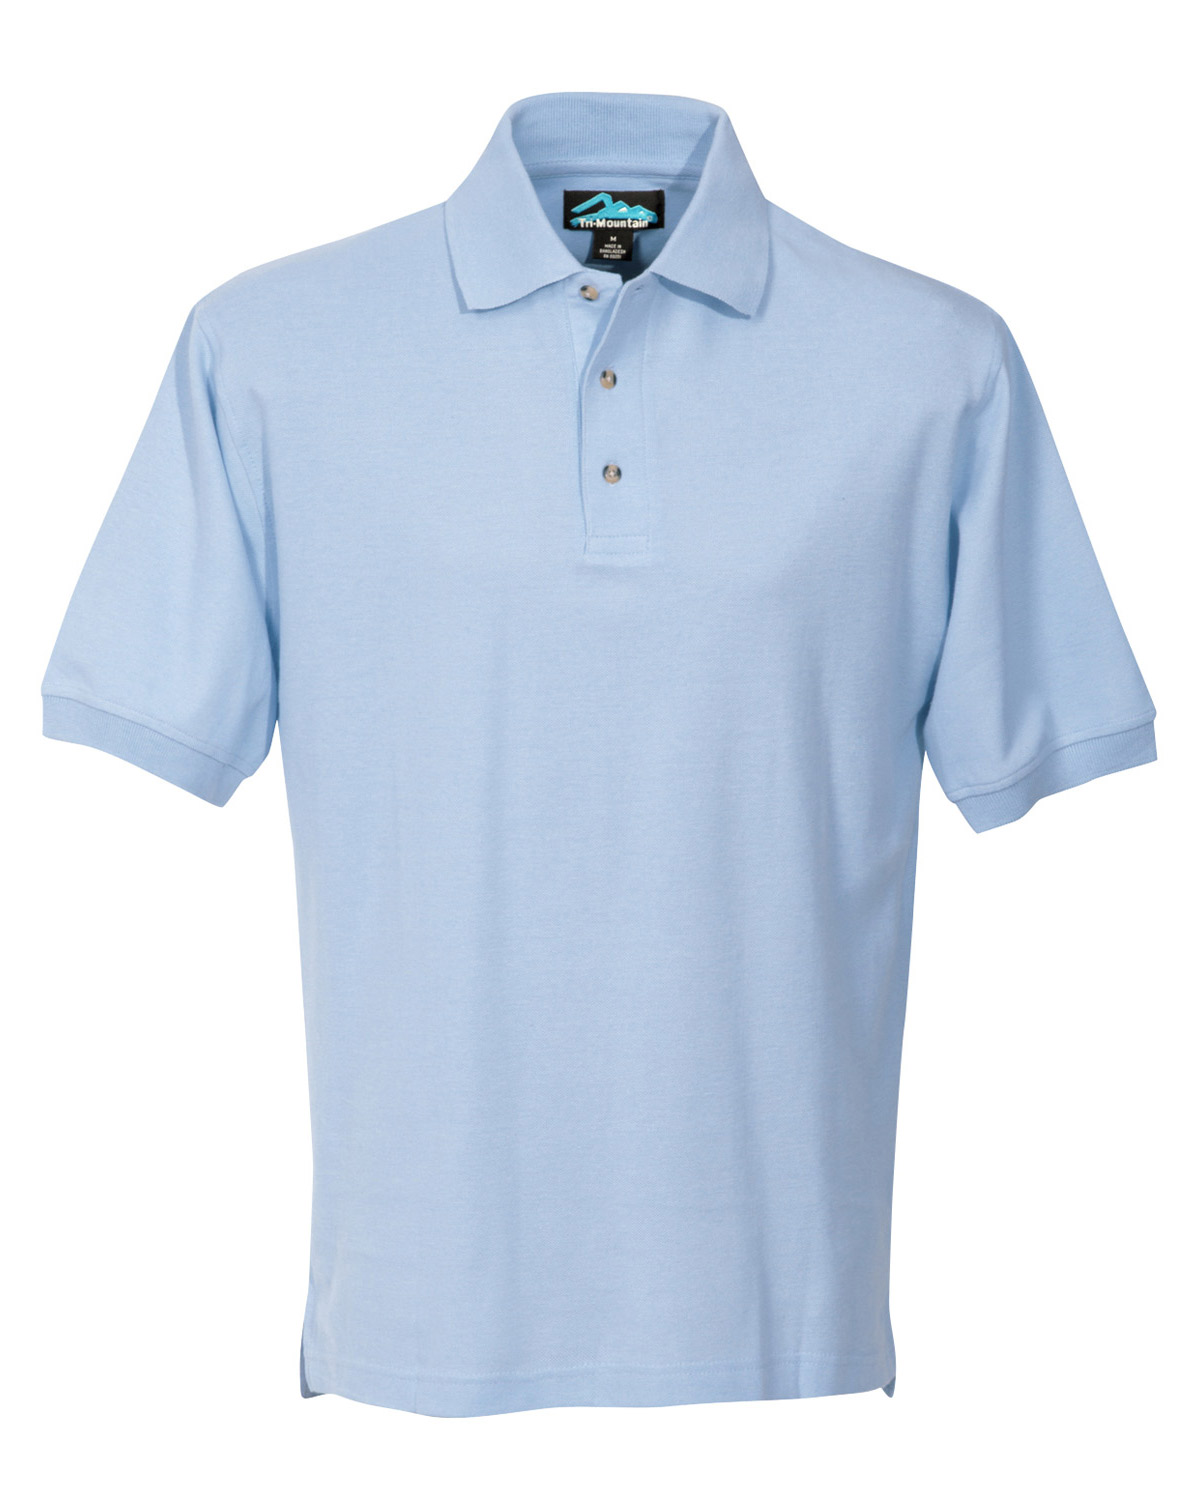 Tri Mountain Pique Polo Golf Shirt At Big And Tall Apparel